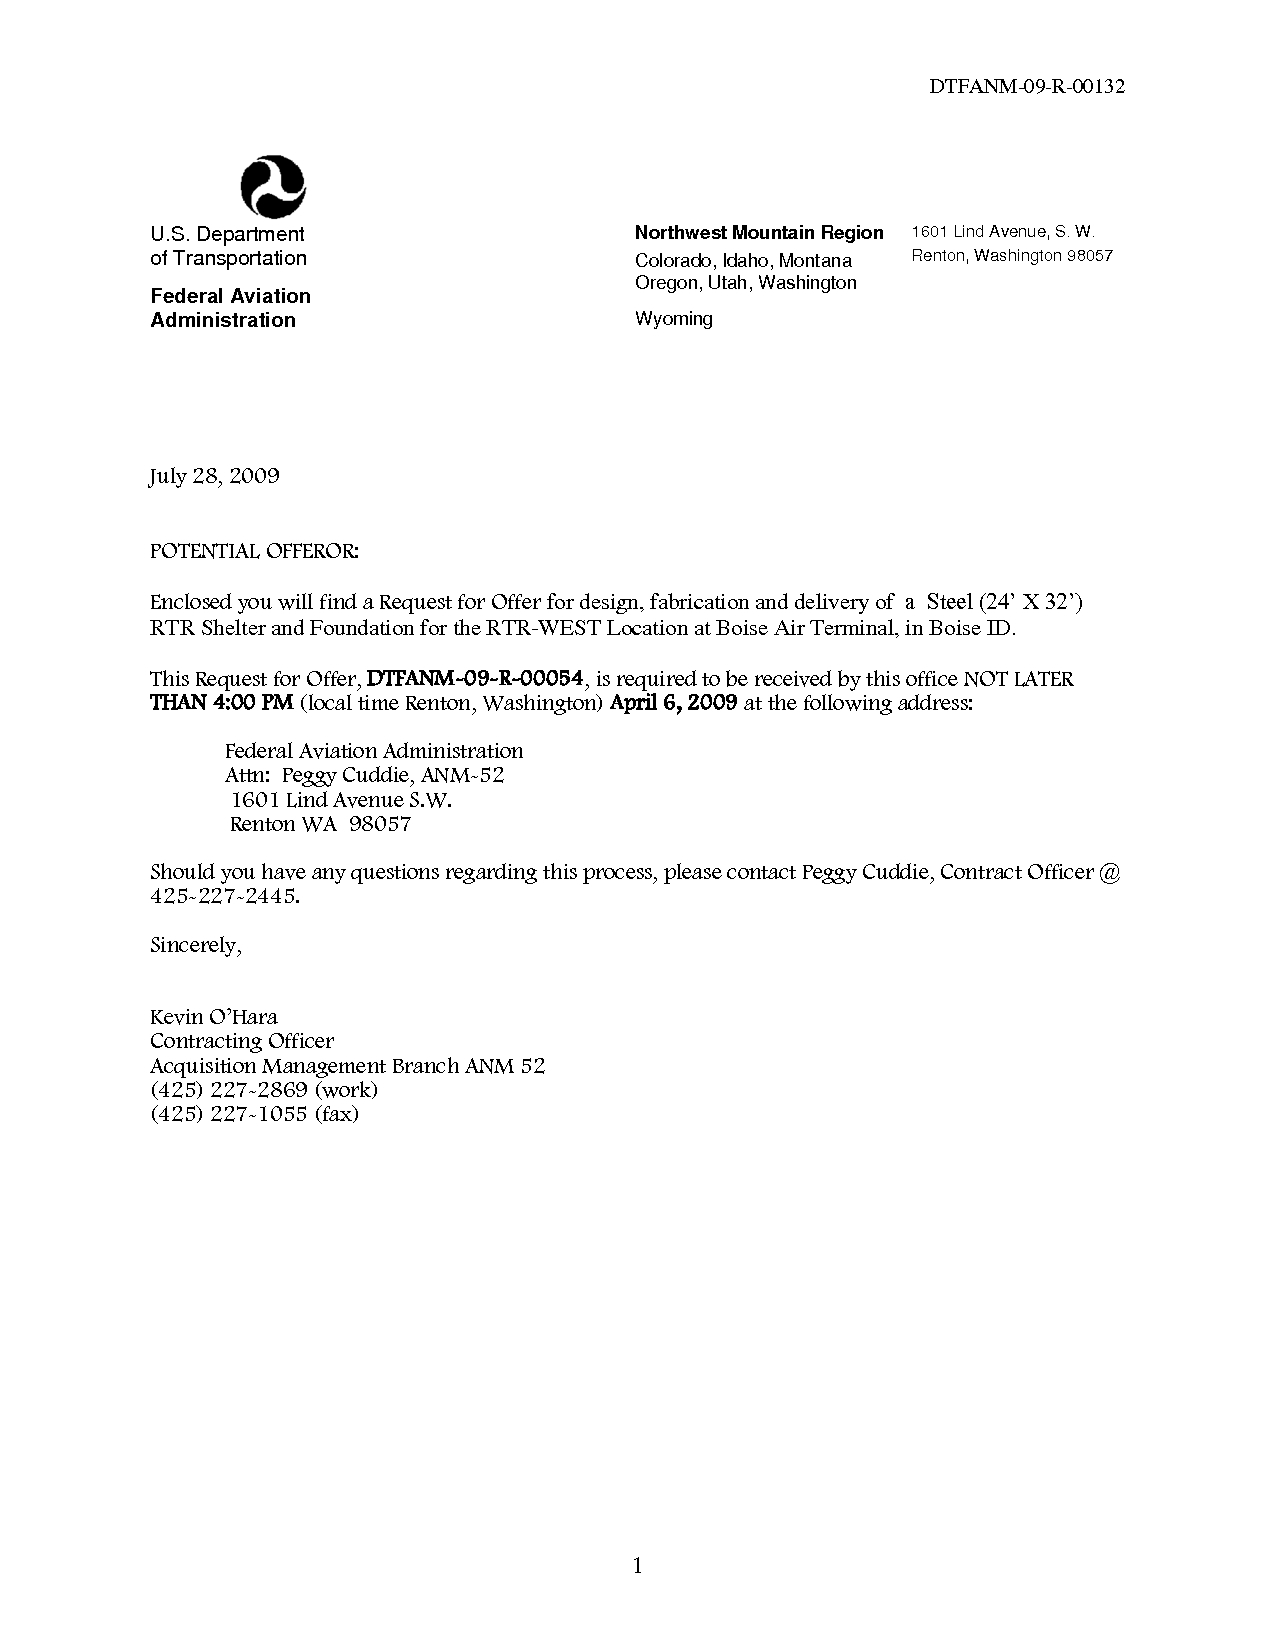 Free Rental Reference Letter Template Collection Letter Template